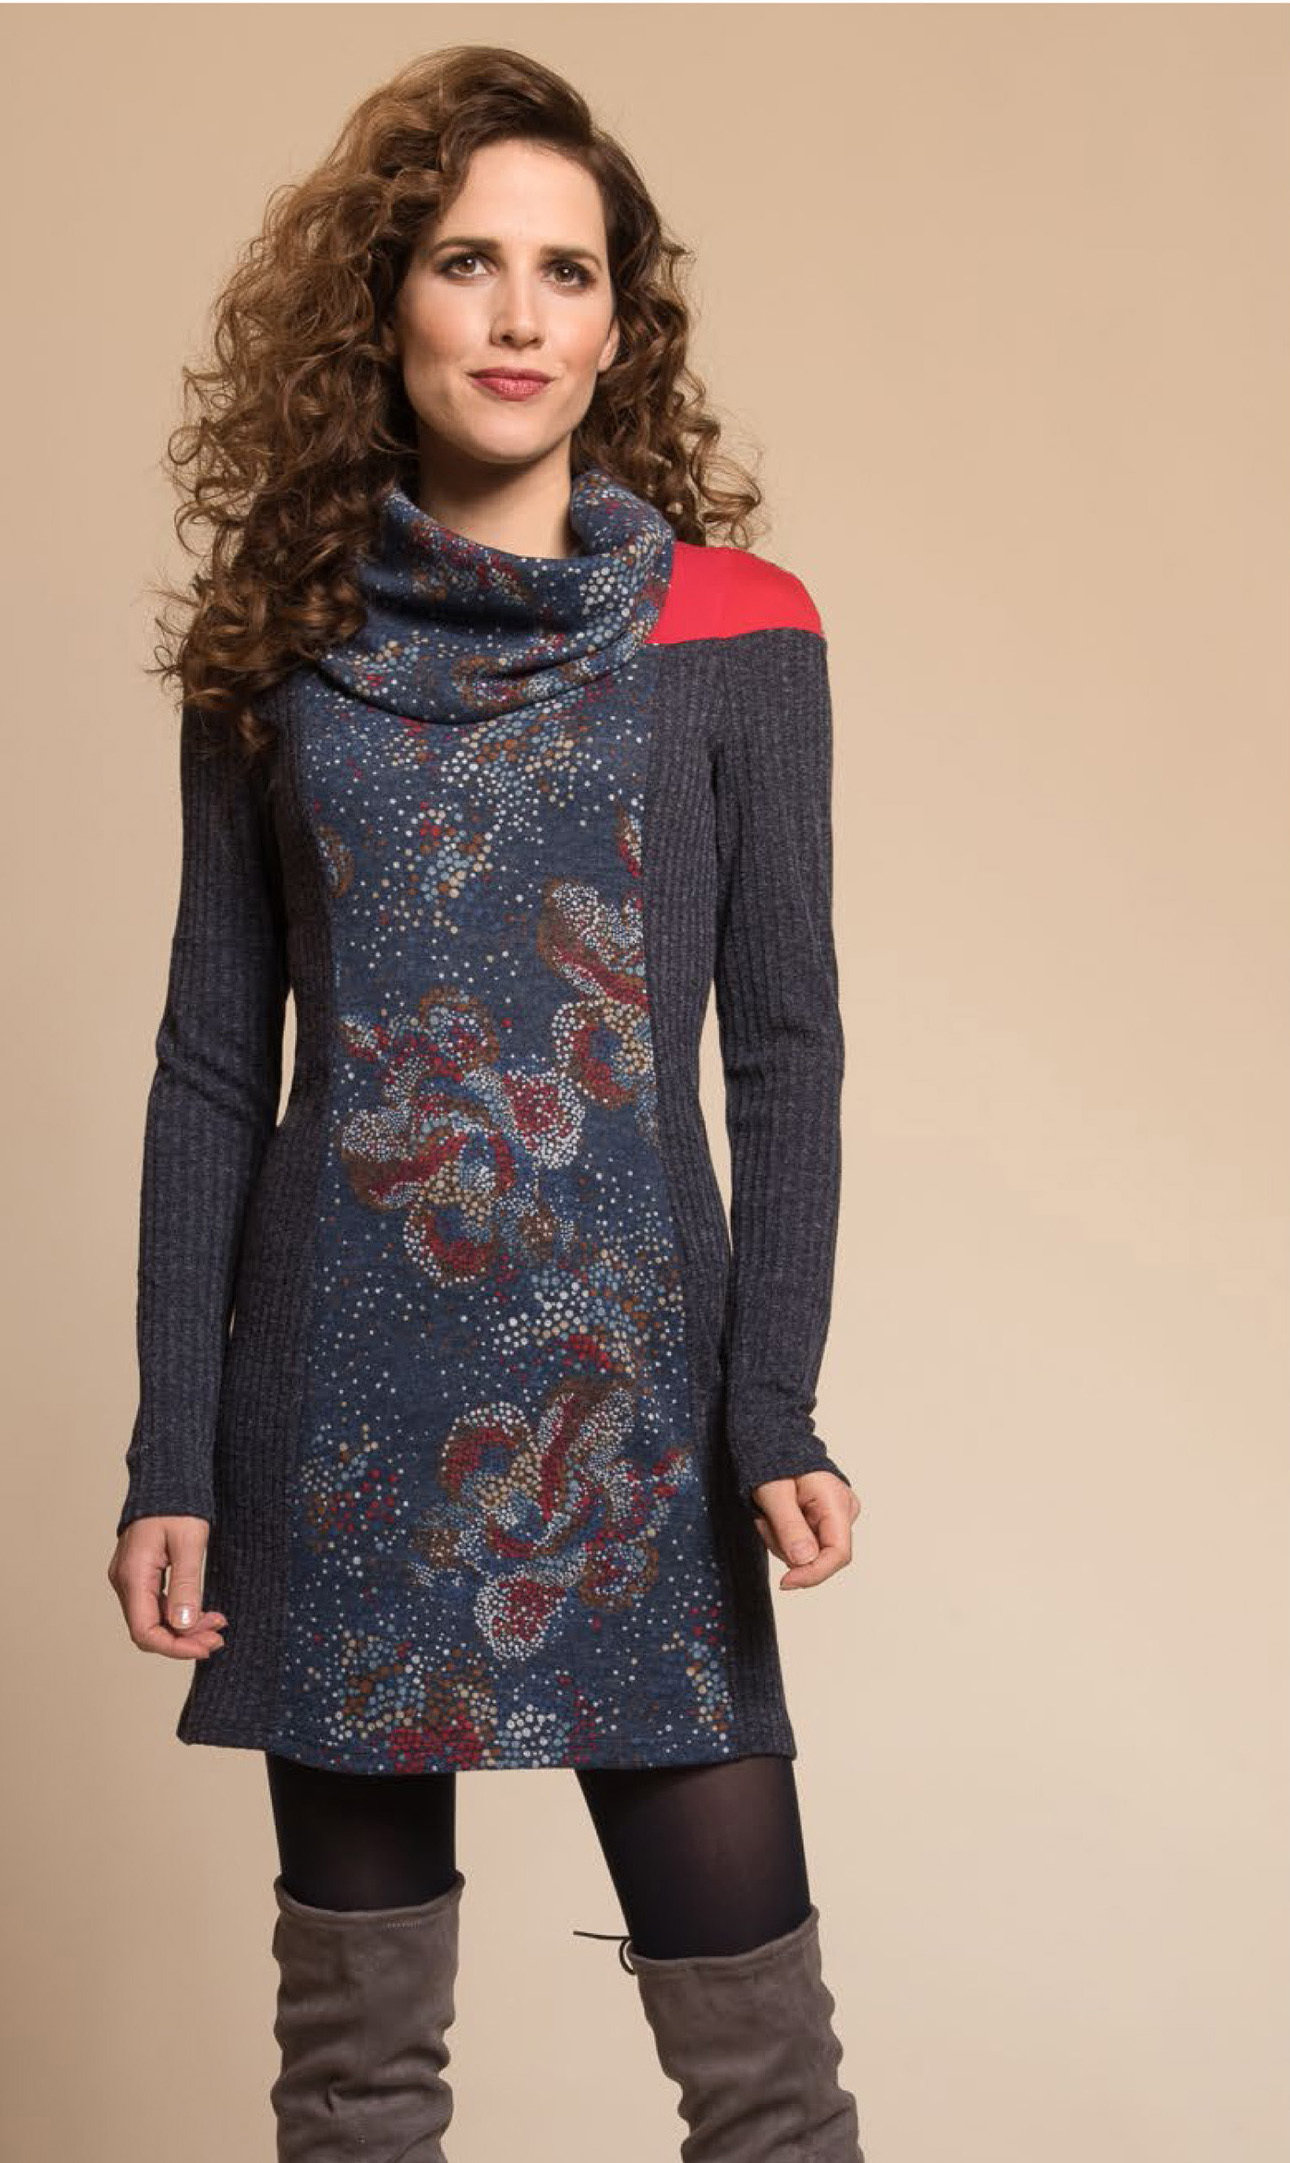 Myco Anna: Cosmic Eco-Wear Asymmetrical Patchwork Sweater Dress MA_DIVERSITE_C2_N